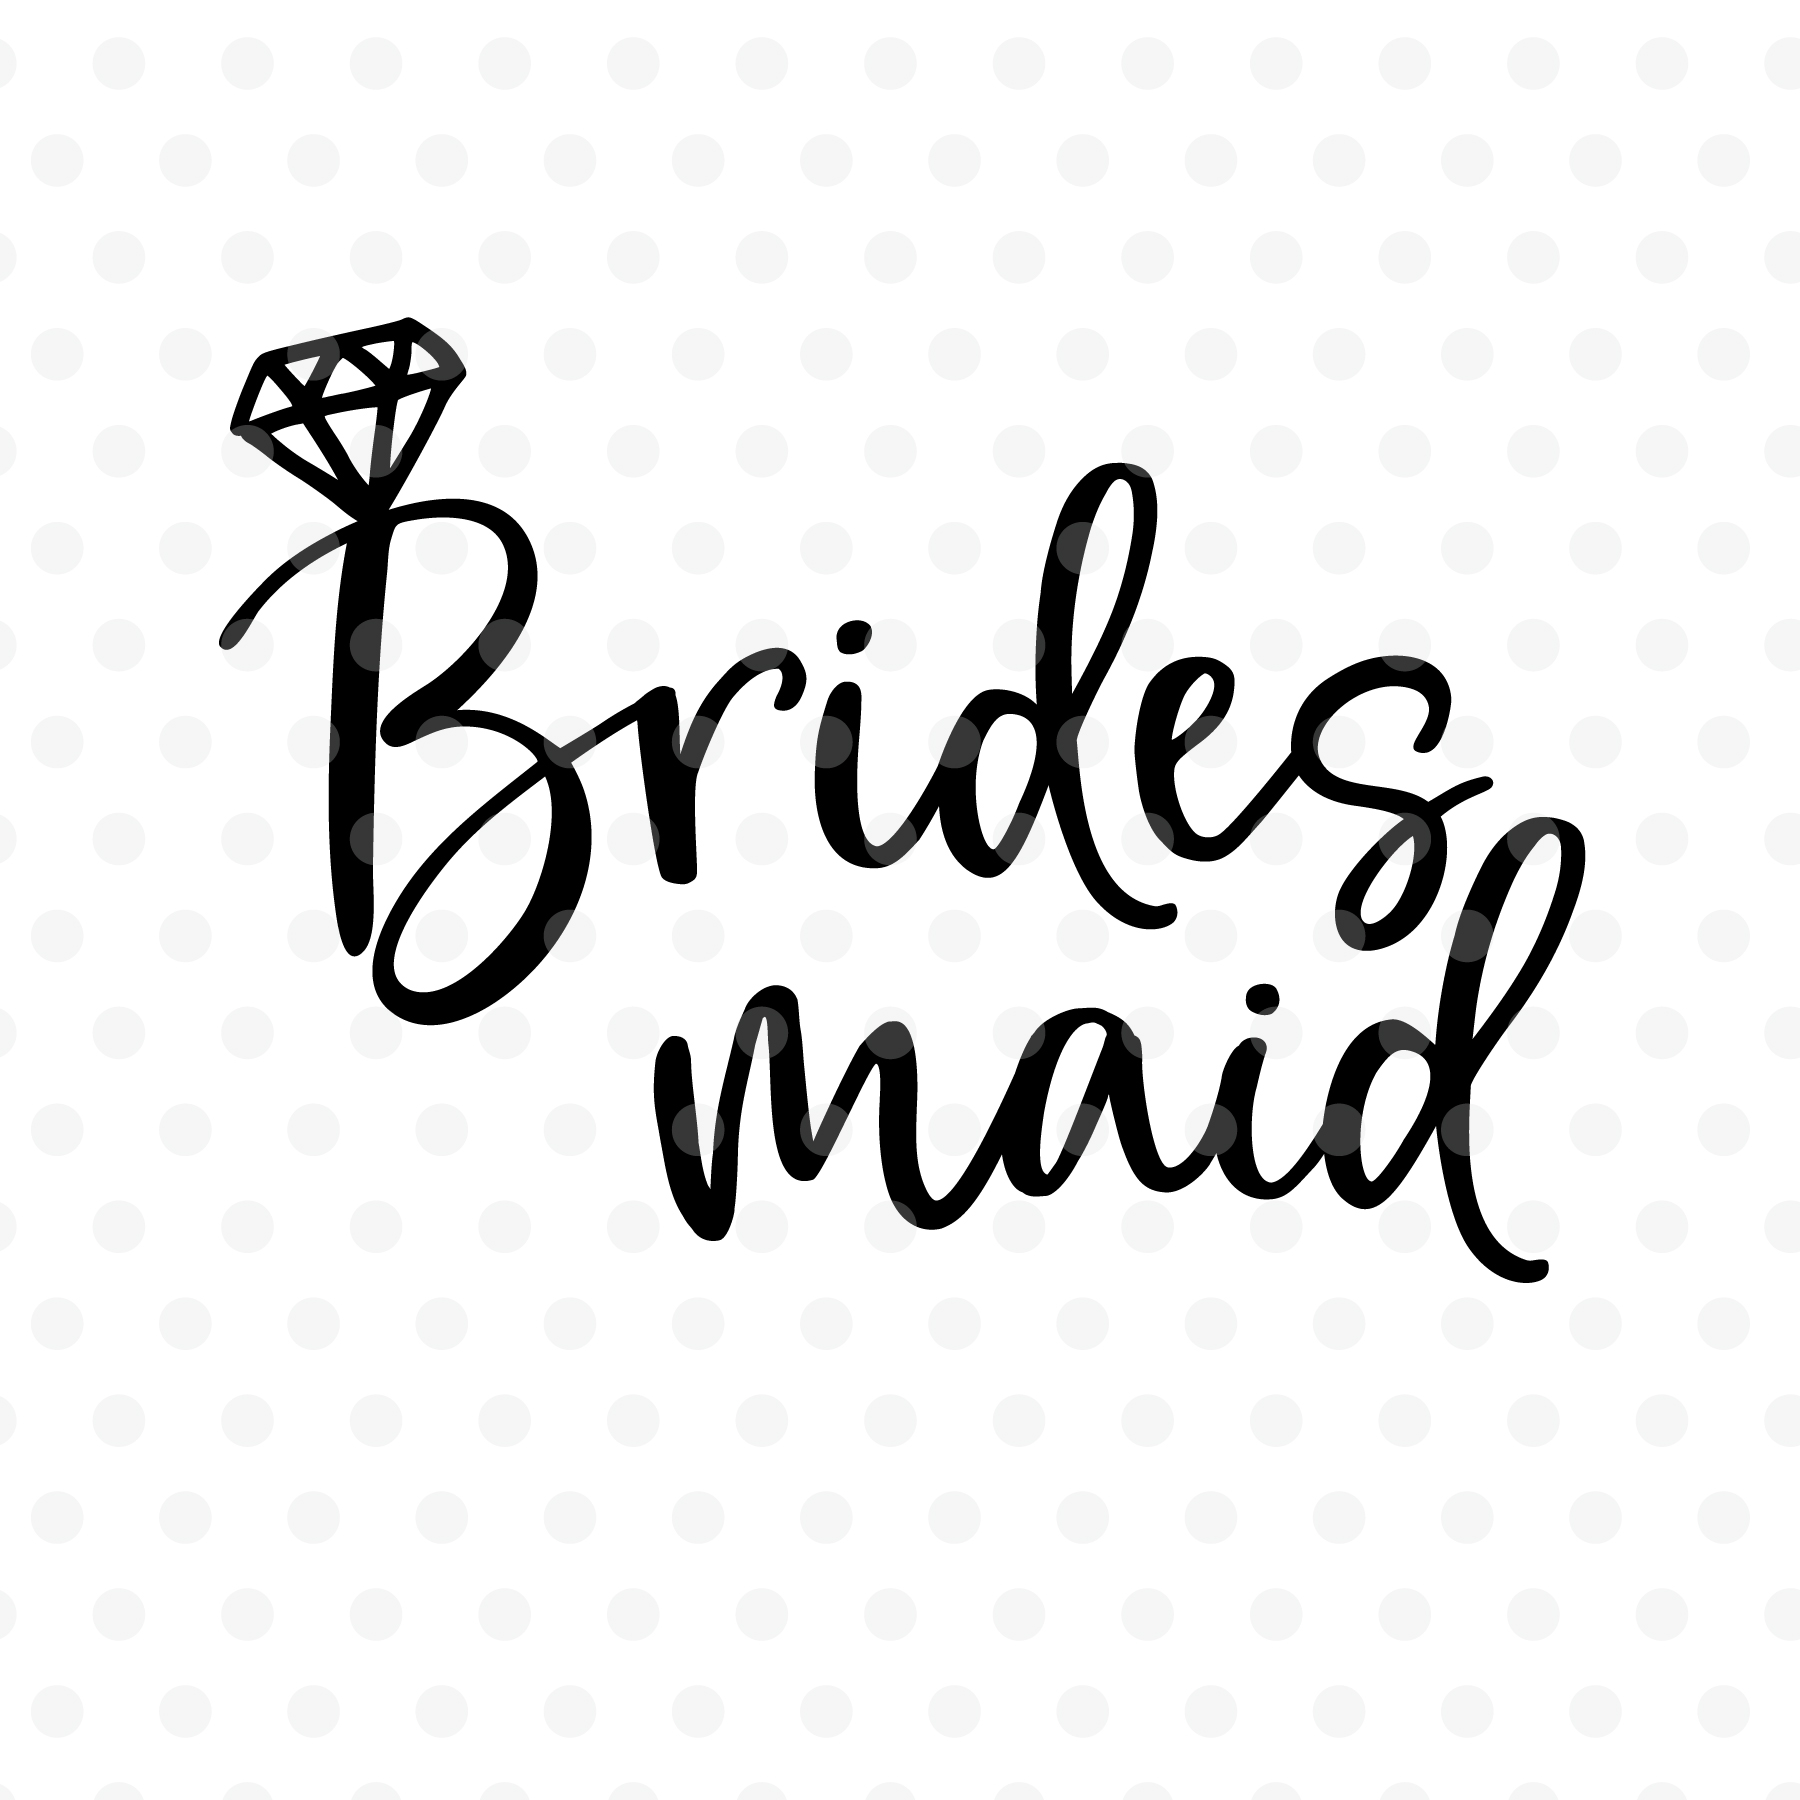 bridesmaid svg #1093, Download drawings